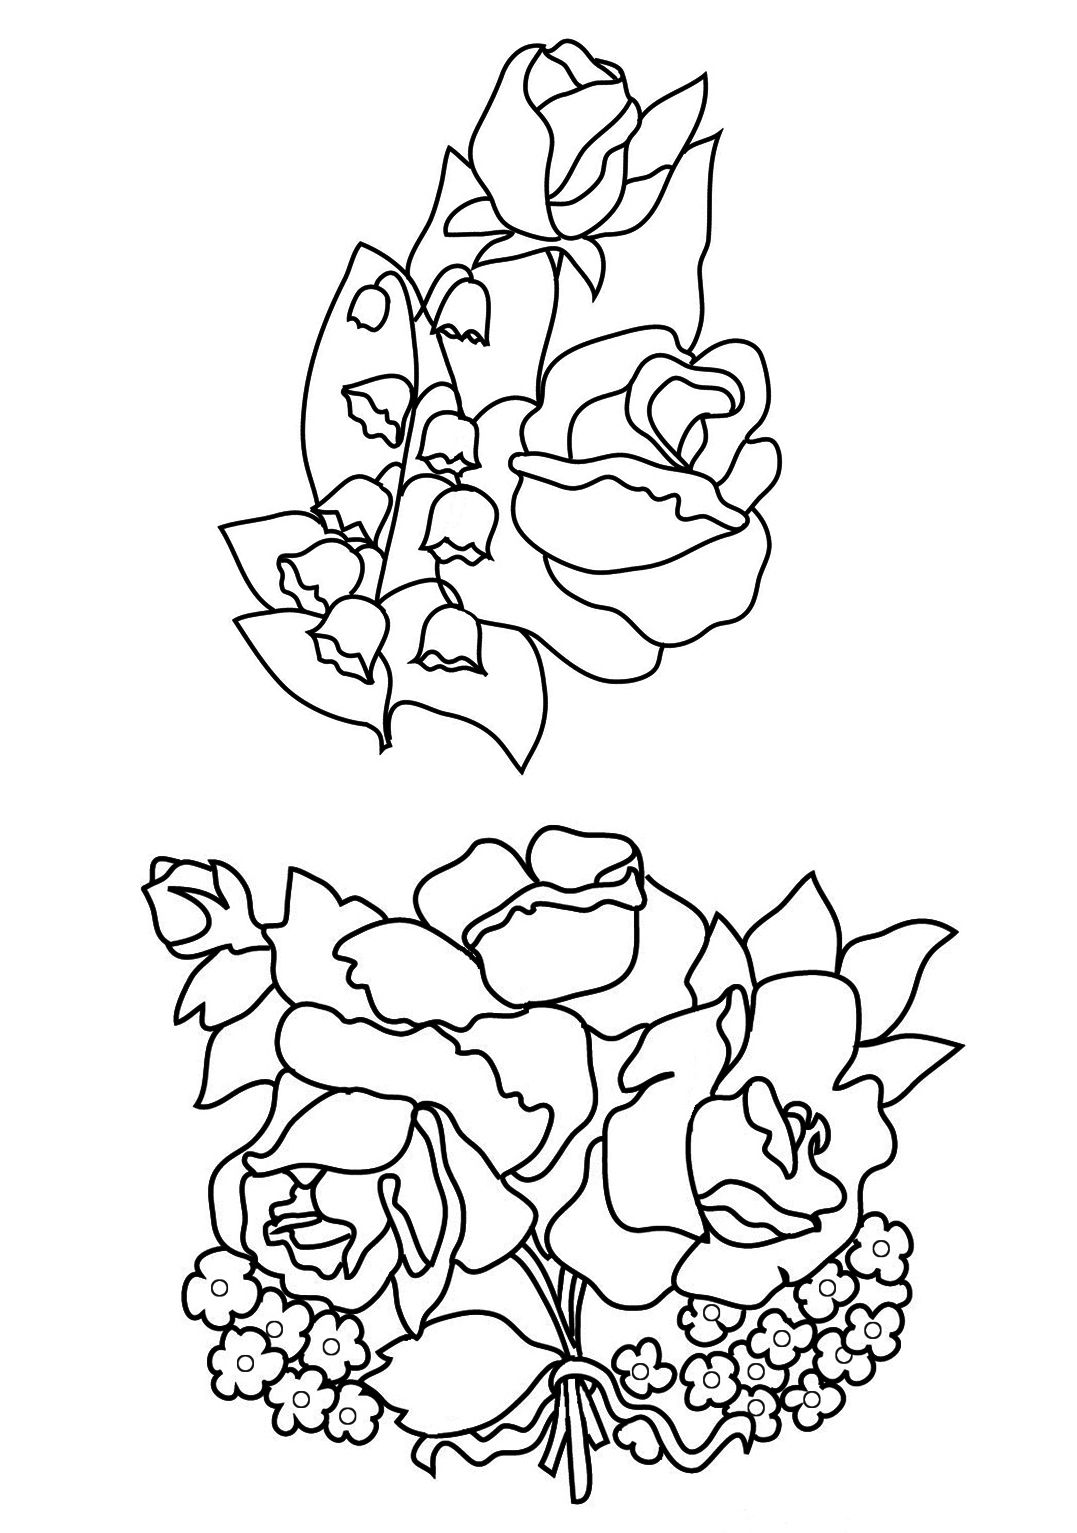 day+lily+clip+art Lily of The Valley Coloring Page